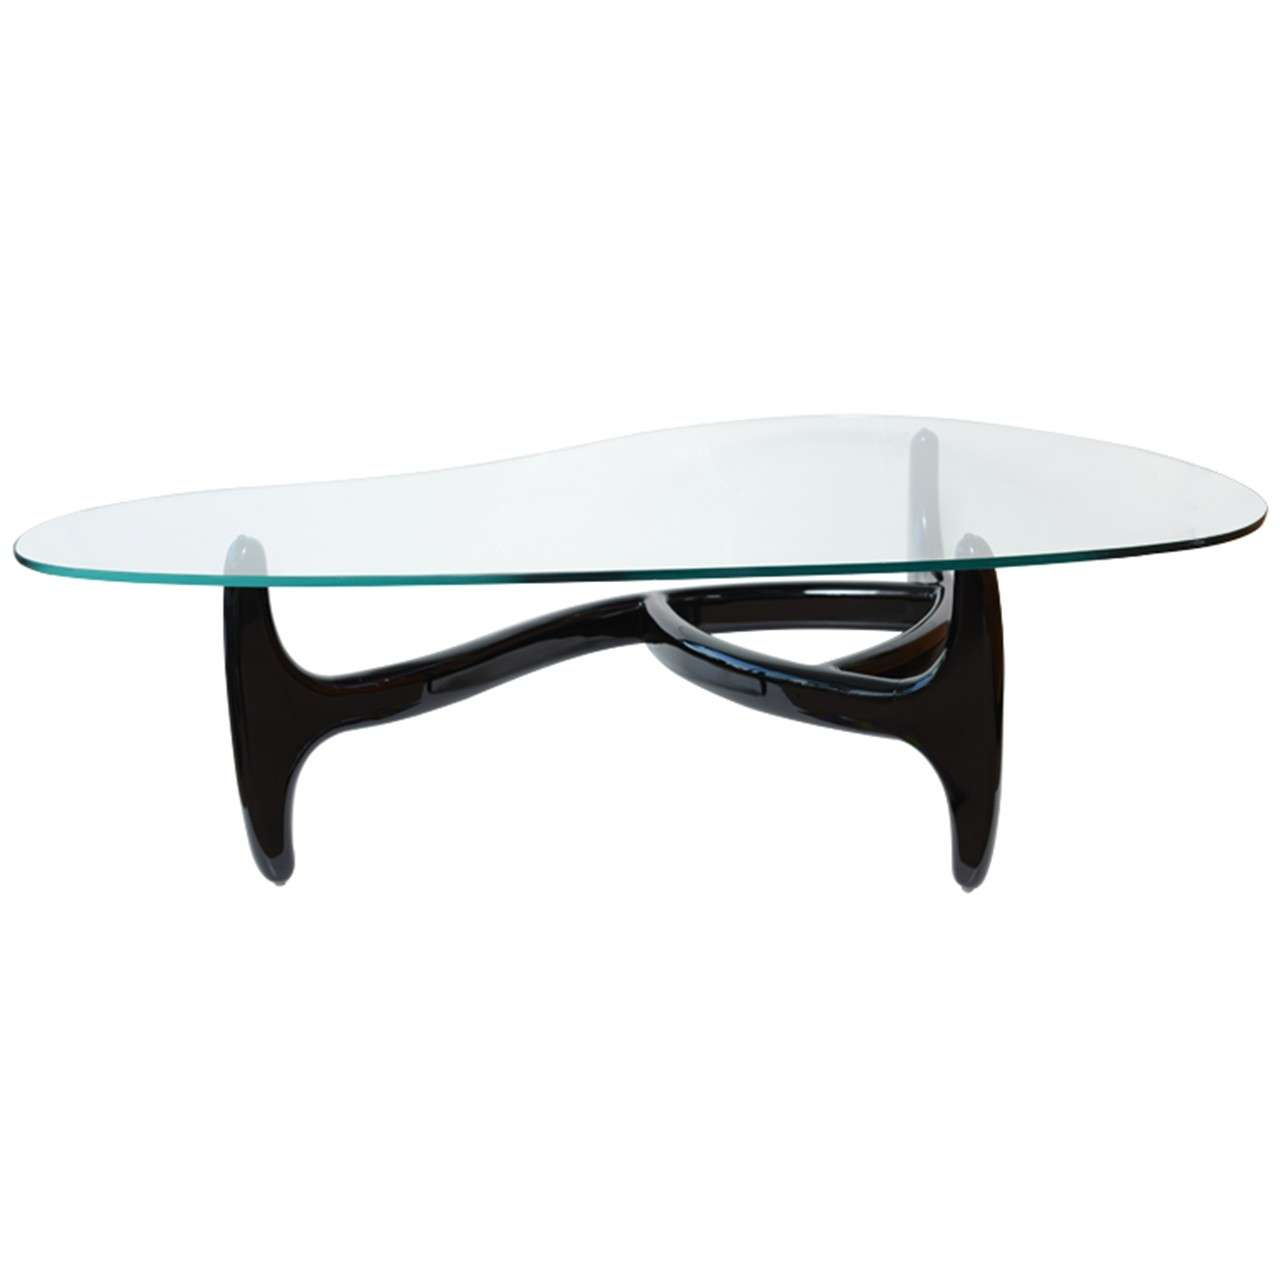 Kidney Shaped Glass Top Coffee Table Designer Architectural Kidney Shaped Coffee Table At 1stdibs